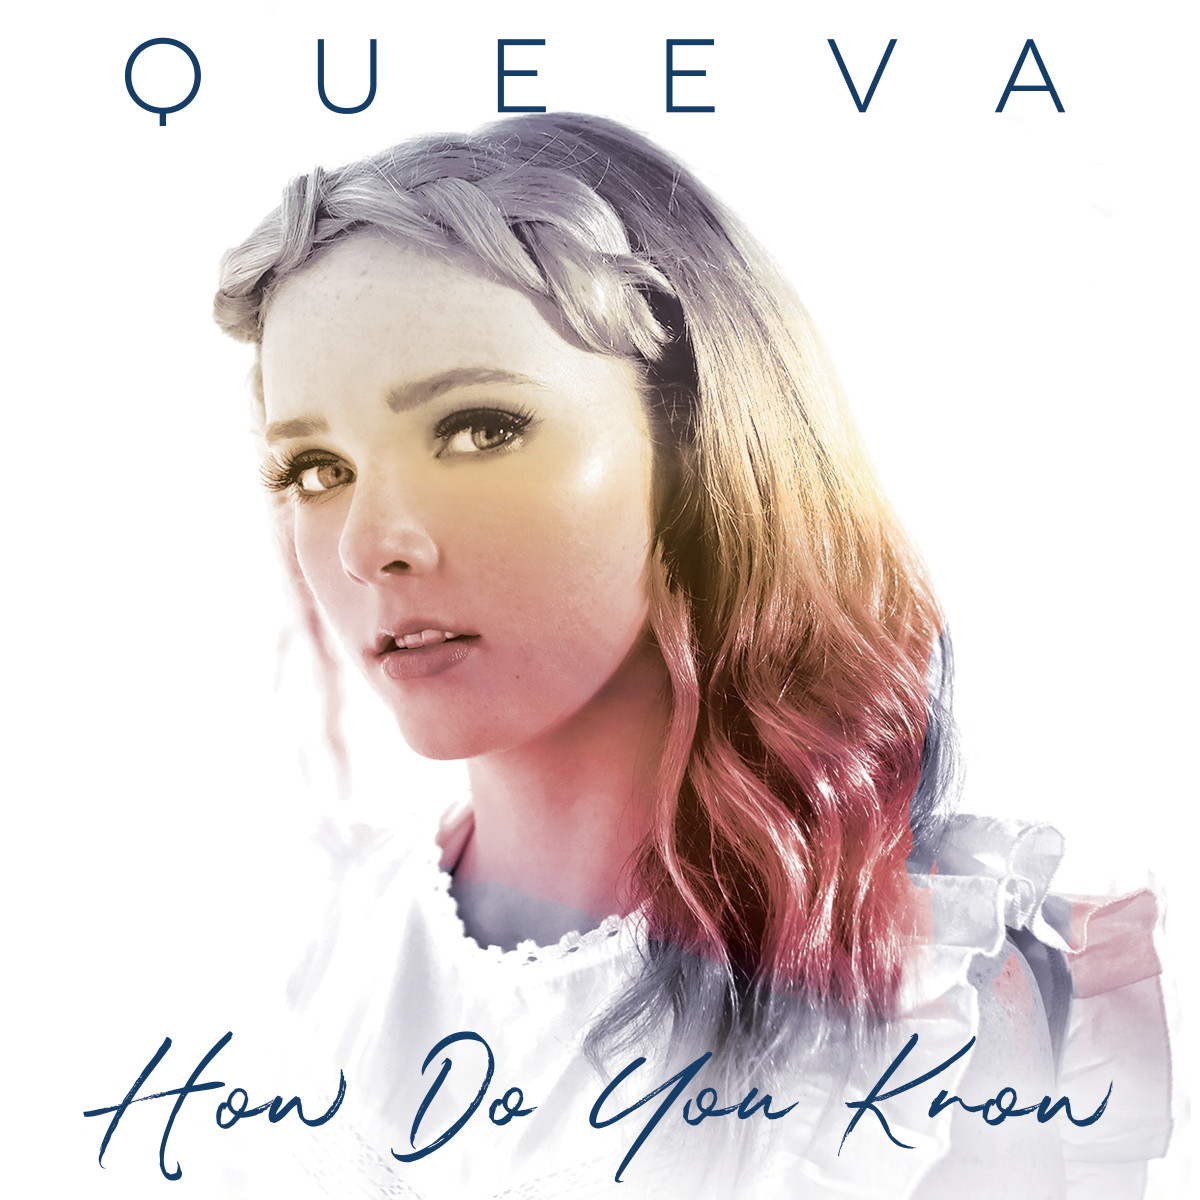 15-year-old-queeva-stands-out-with-new-how-do-you-know-single